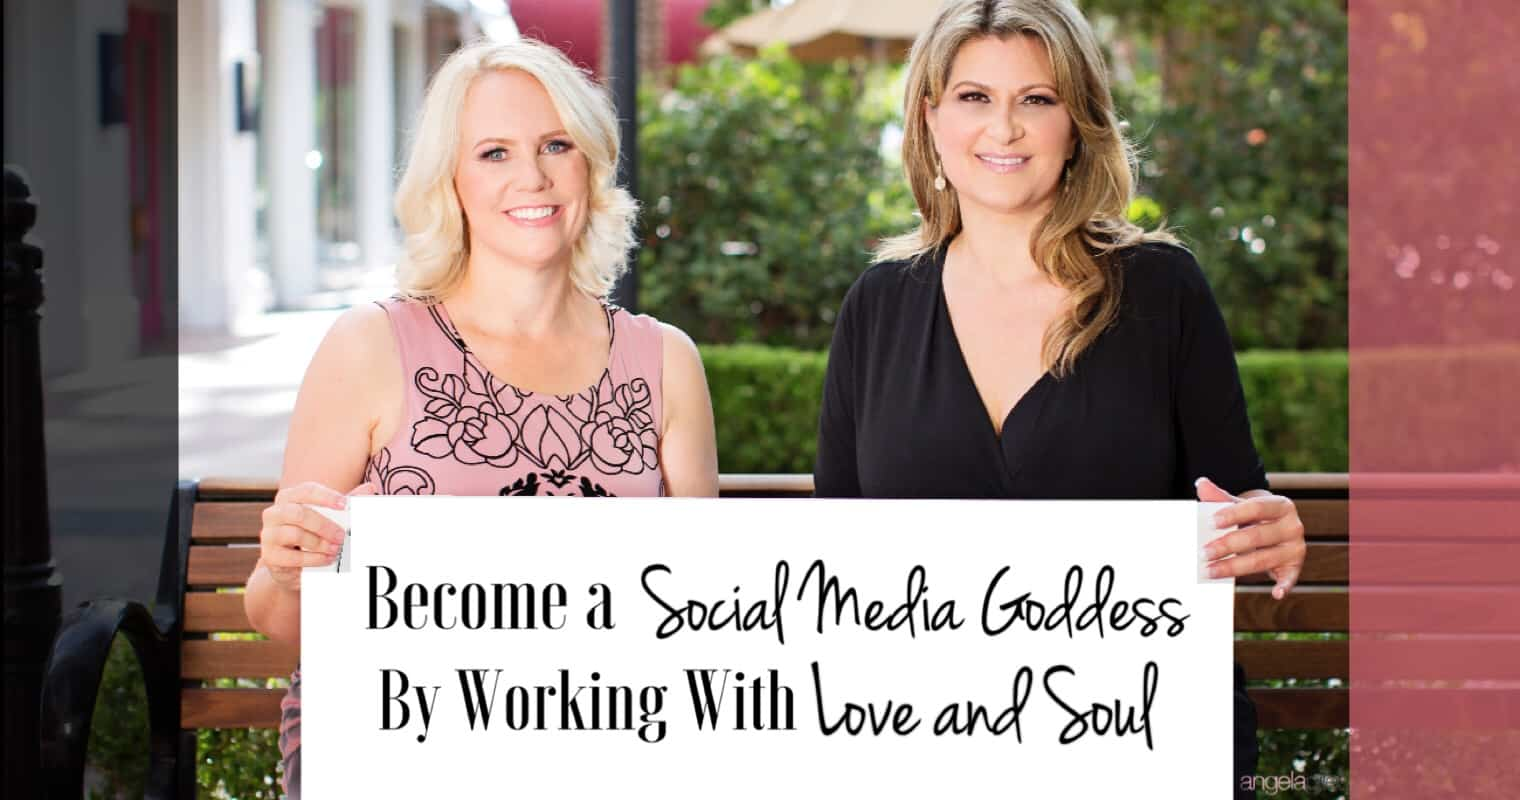 Become A Social Media Goddess By Working With Love And Soul